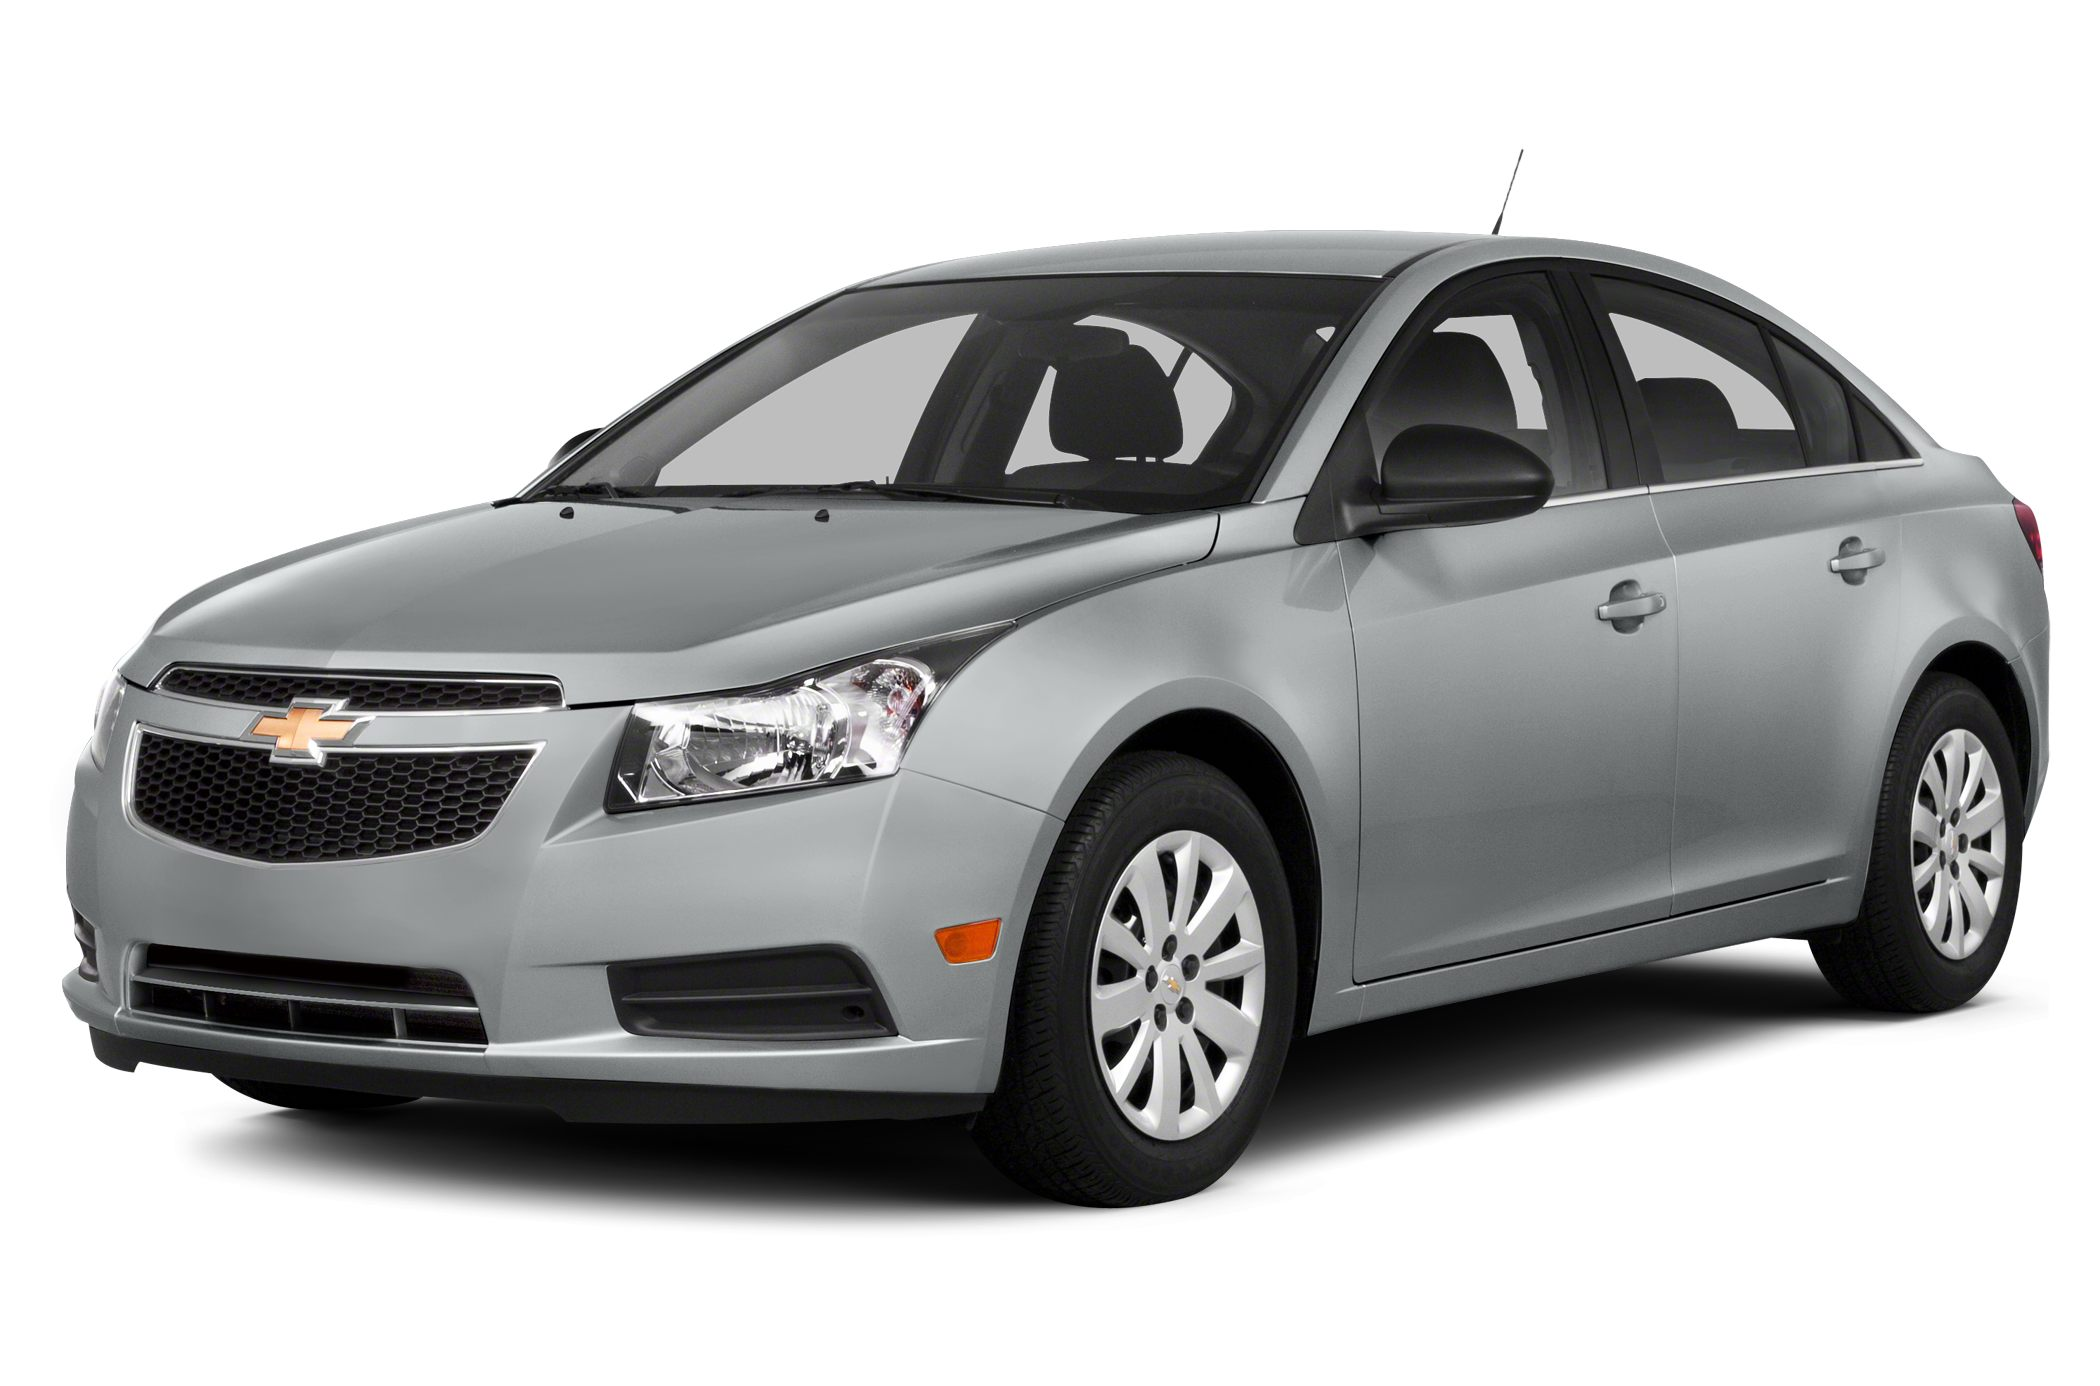 2014 Chevrolet Cruze  Turbocharged Car buying made easy Bayer Motor Company is excited to offer